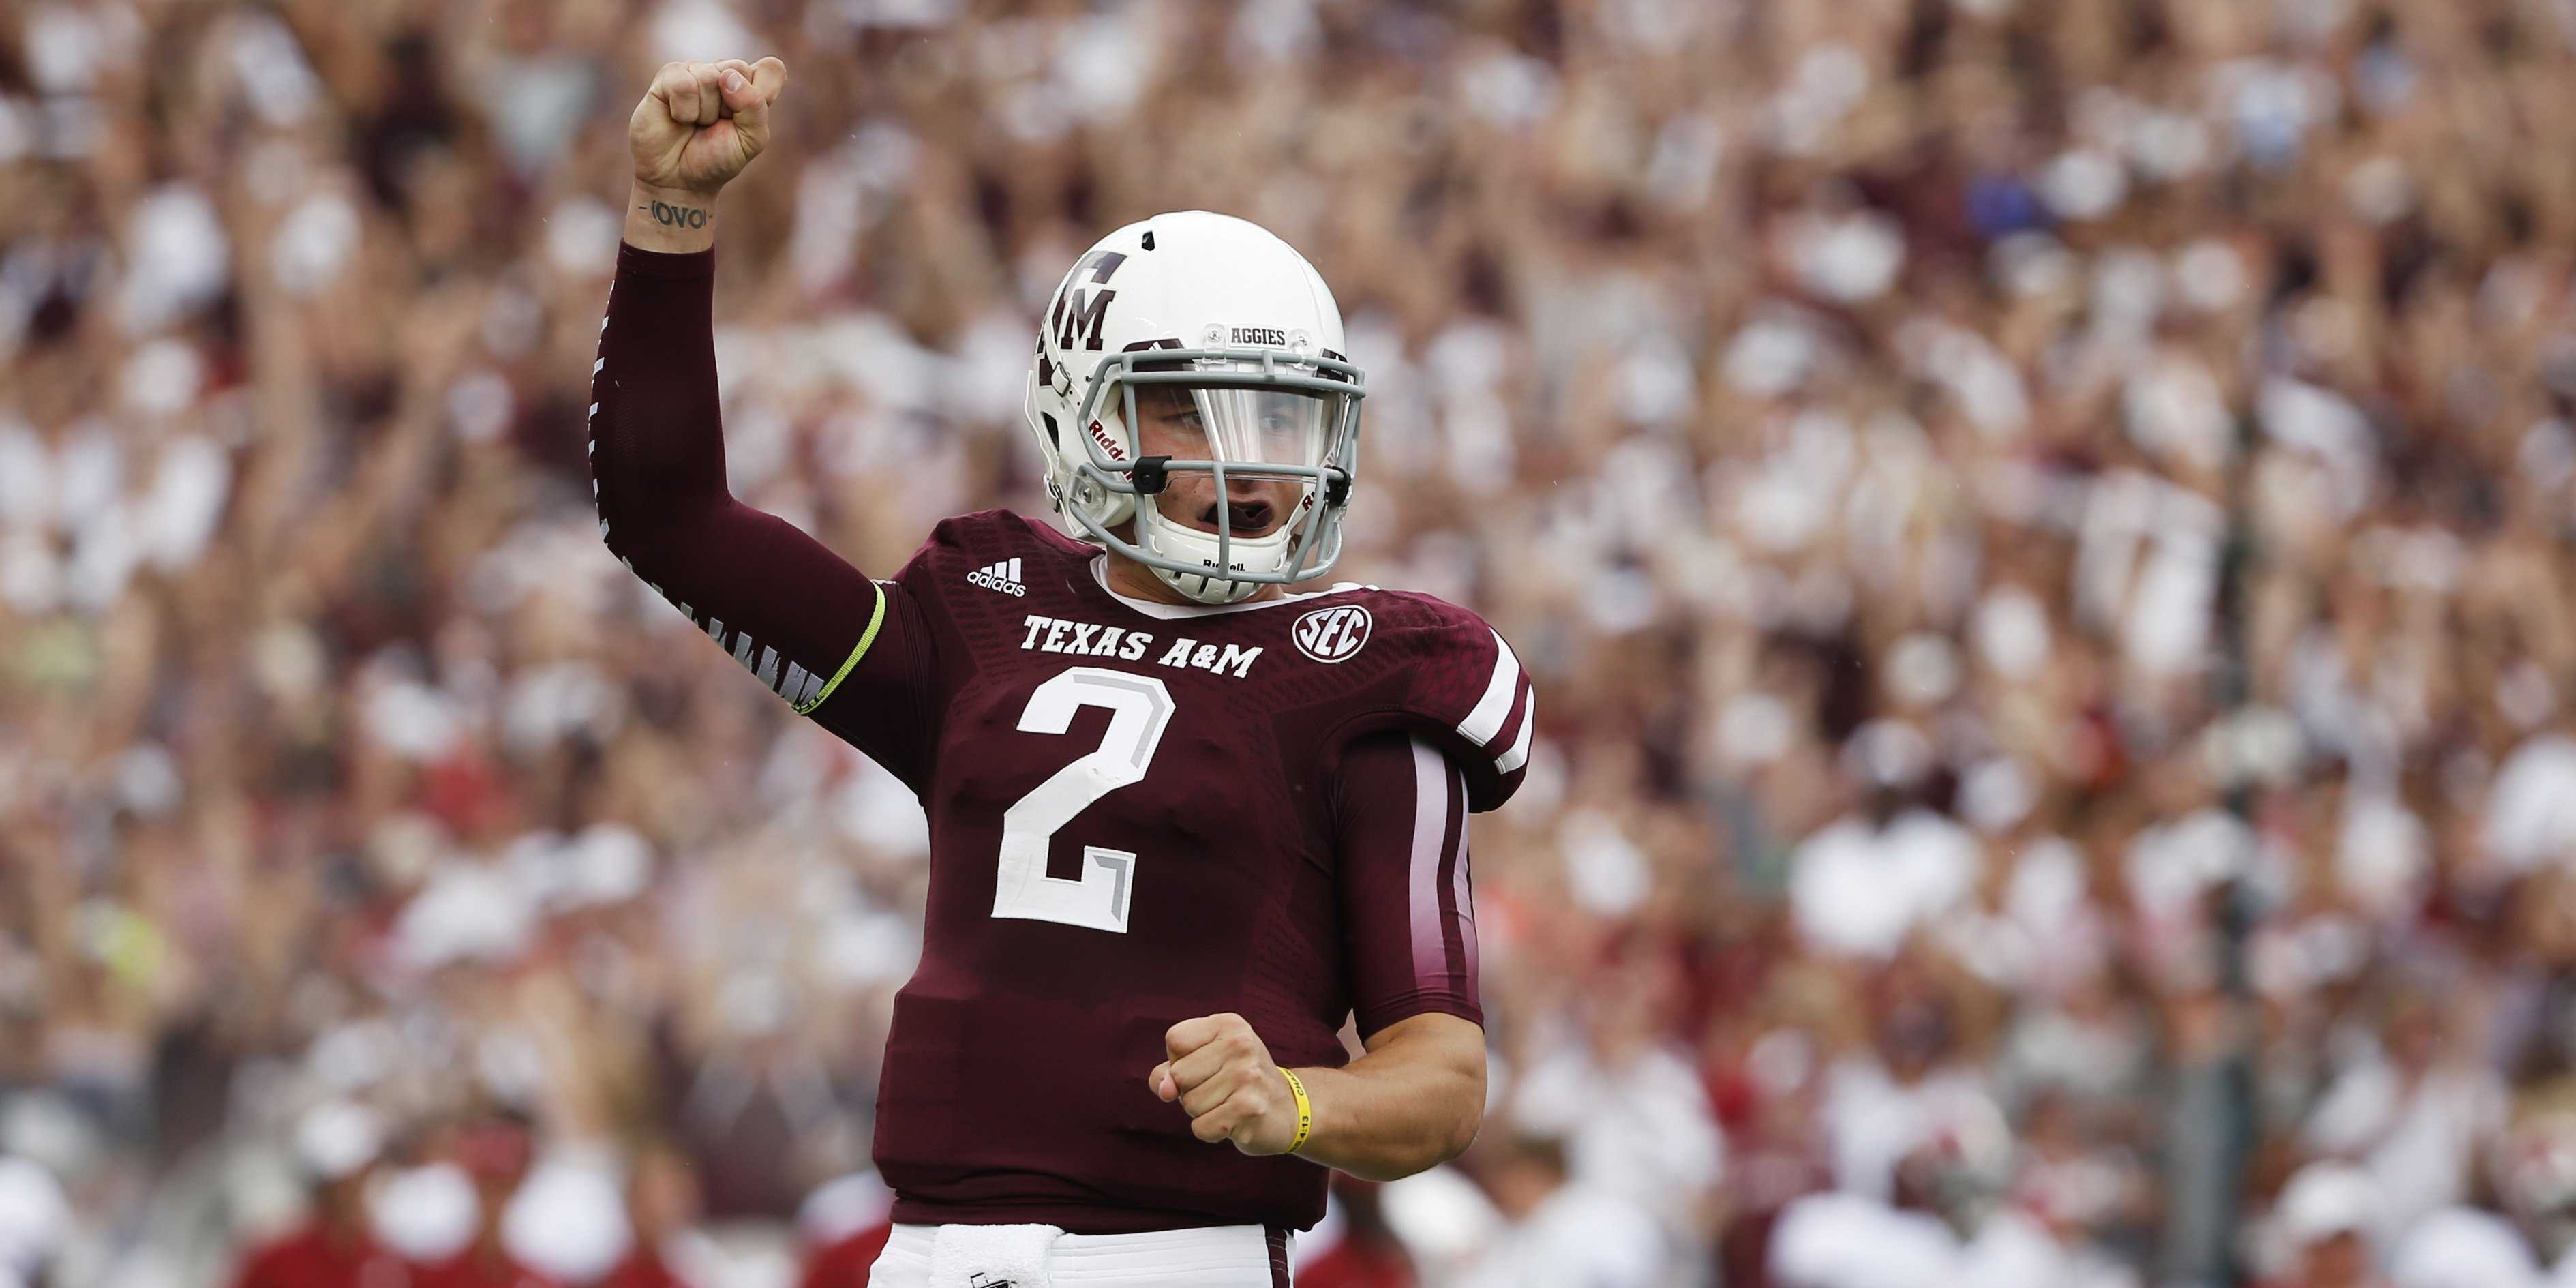 What Nationality Is Johnny Manziel